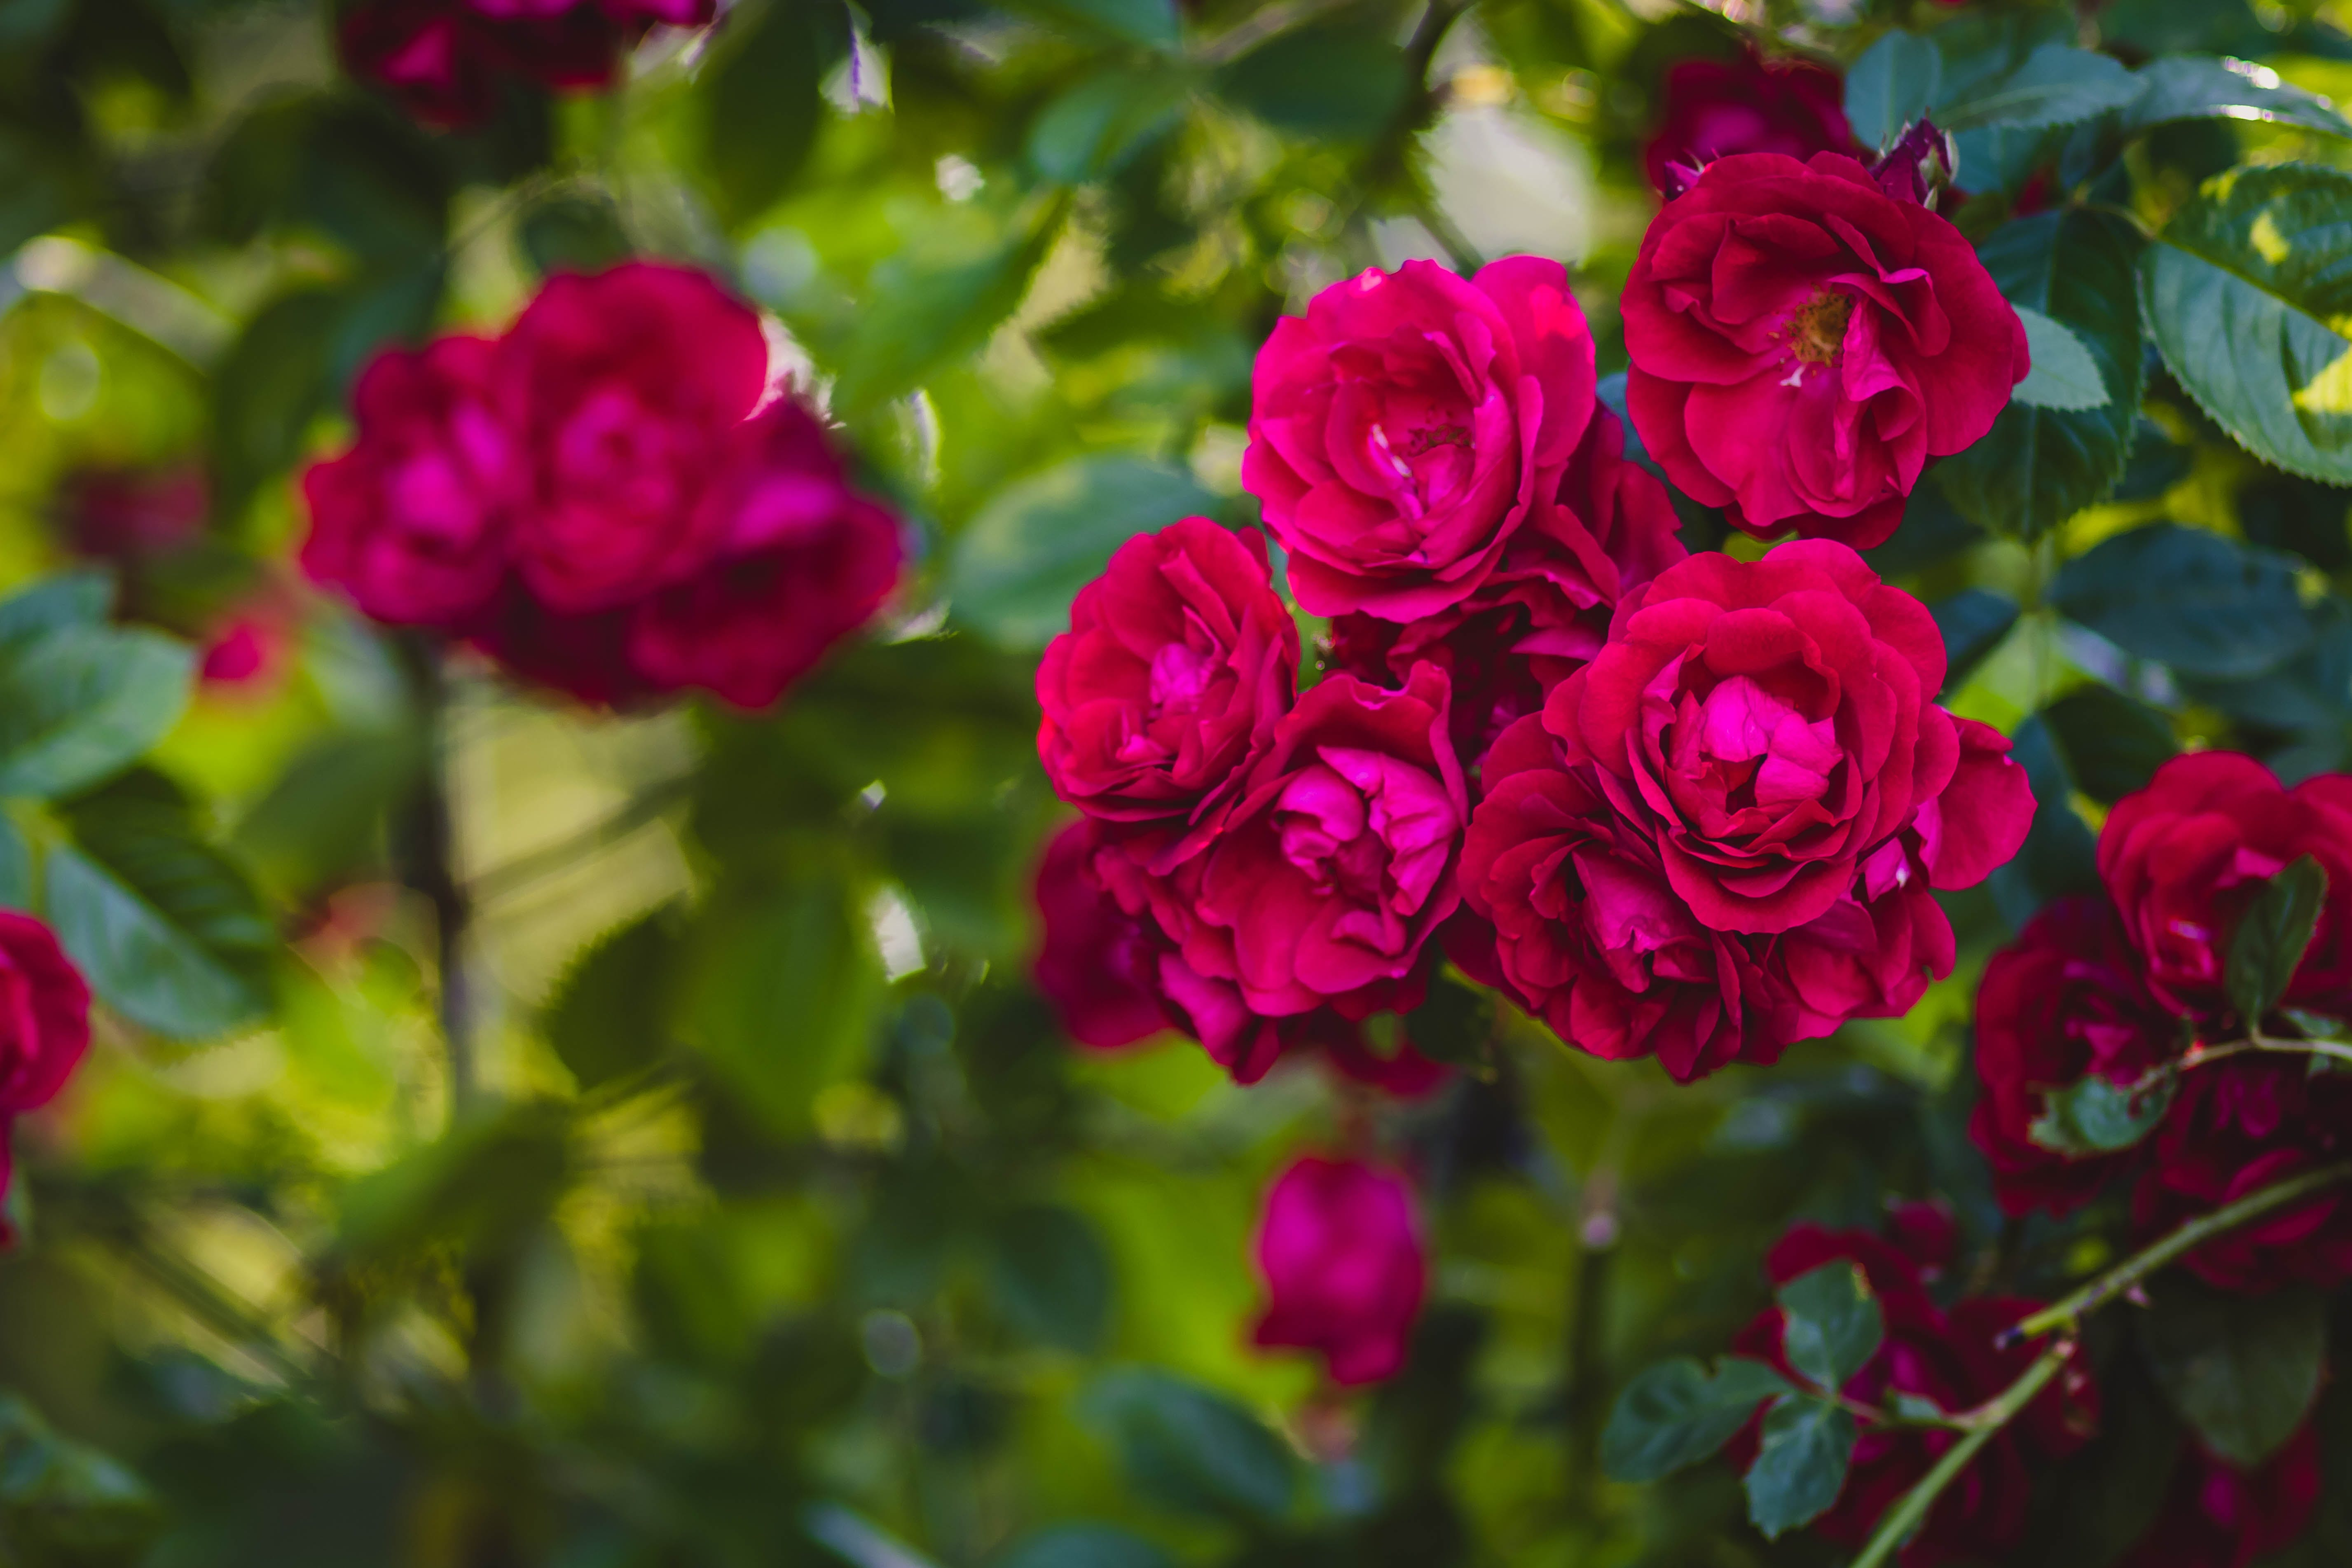 Selective Focus of Pink Rose Flowers